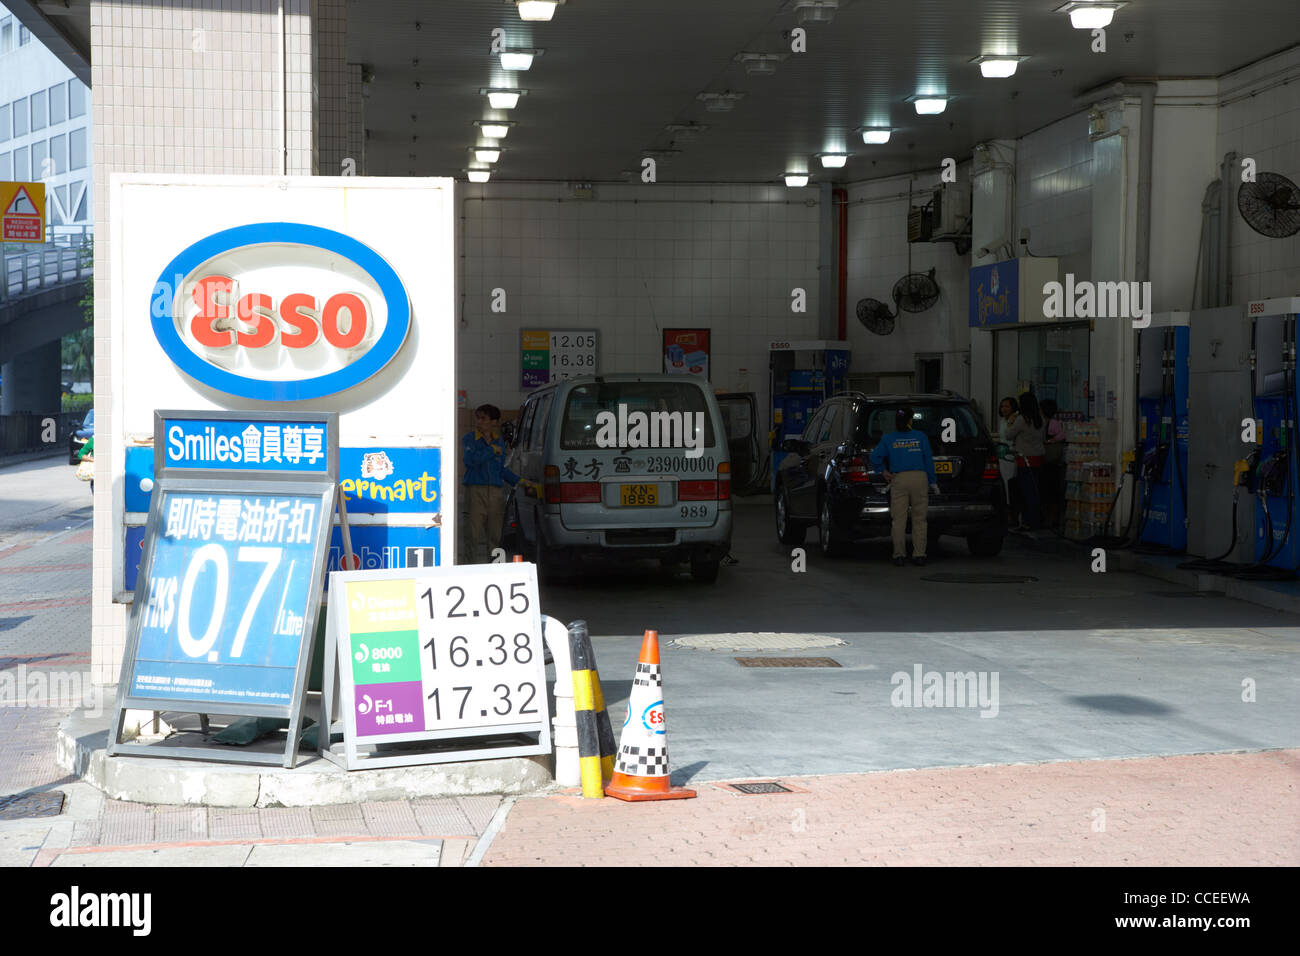 Esso Filling Station Stock Photos & Esso Filling Station Stock ...